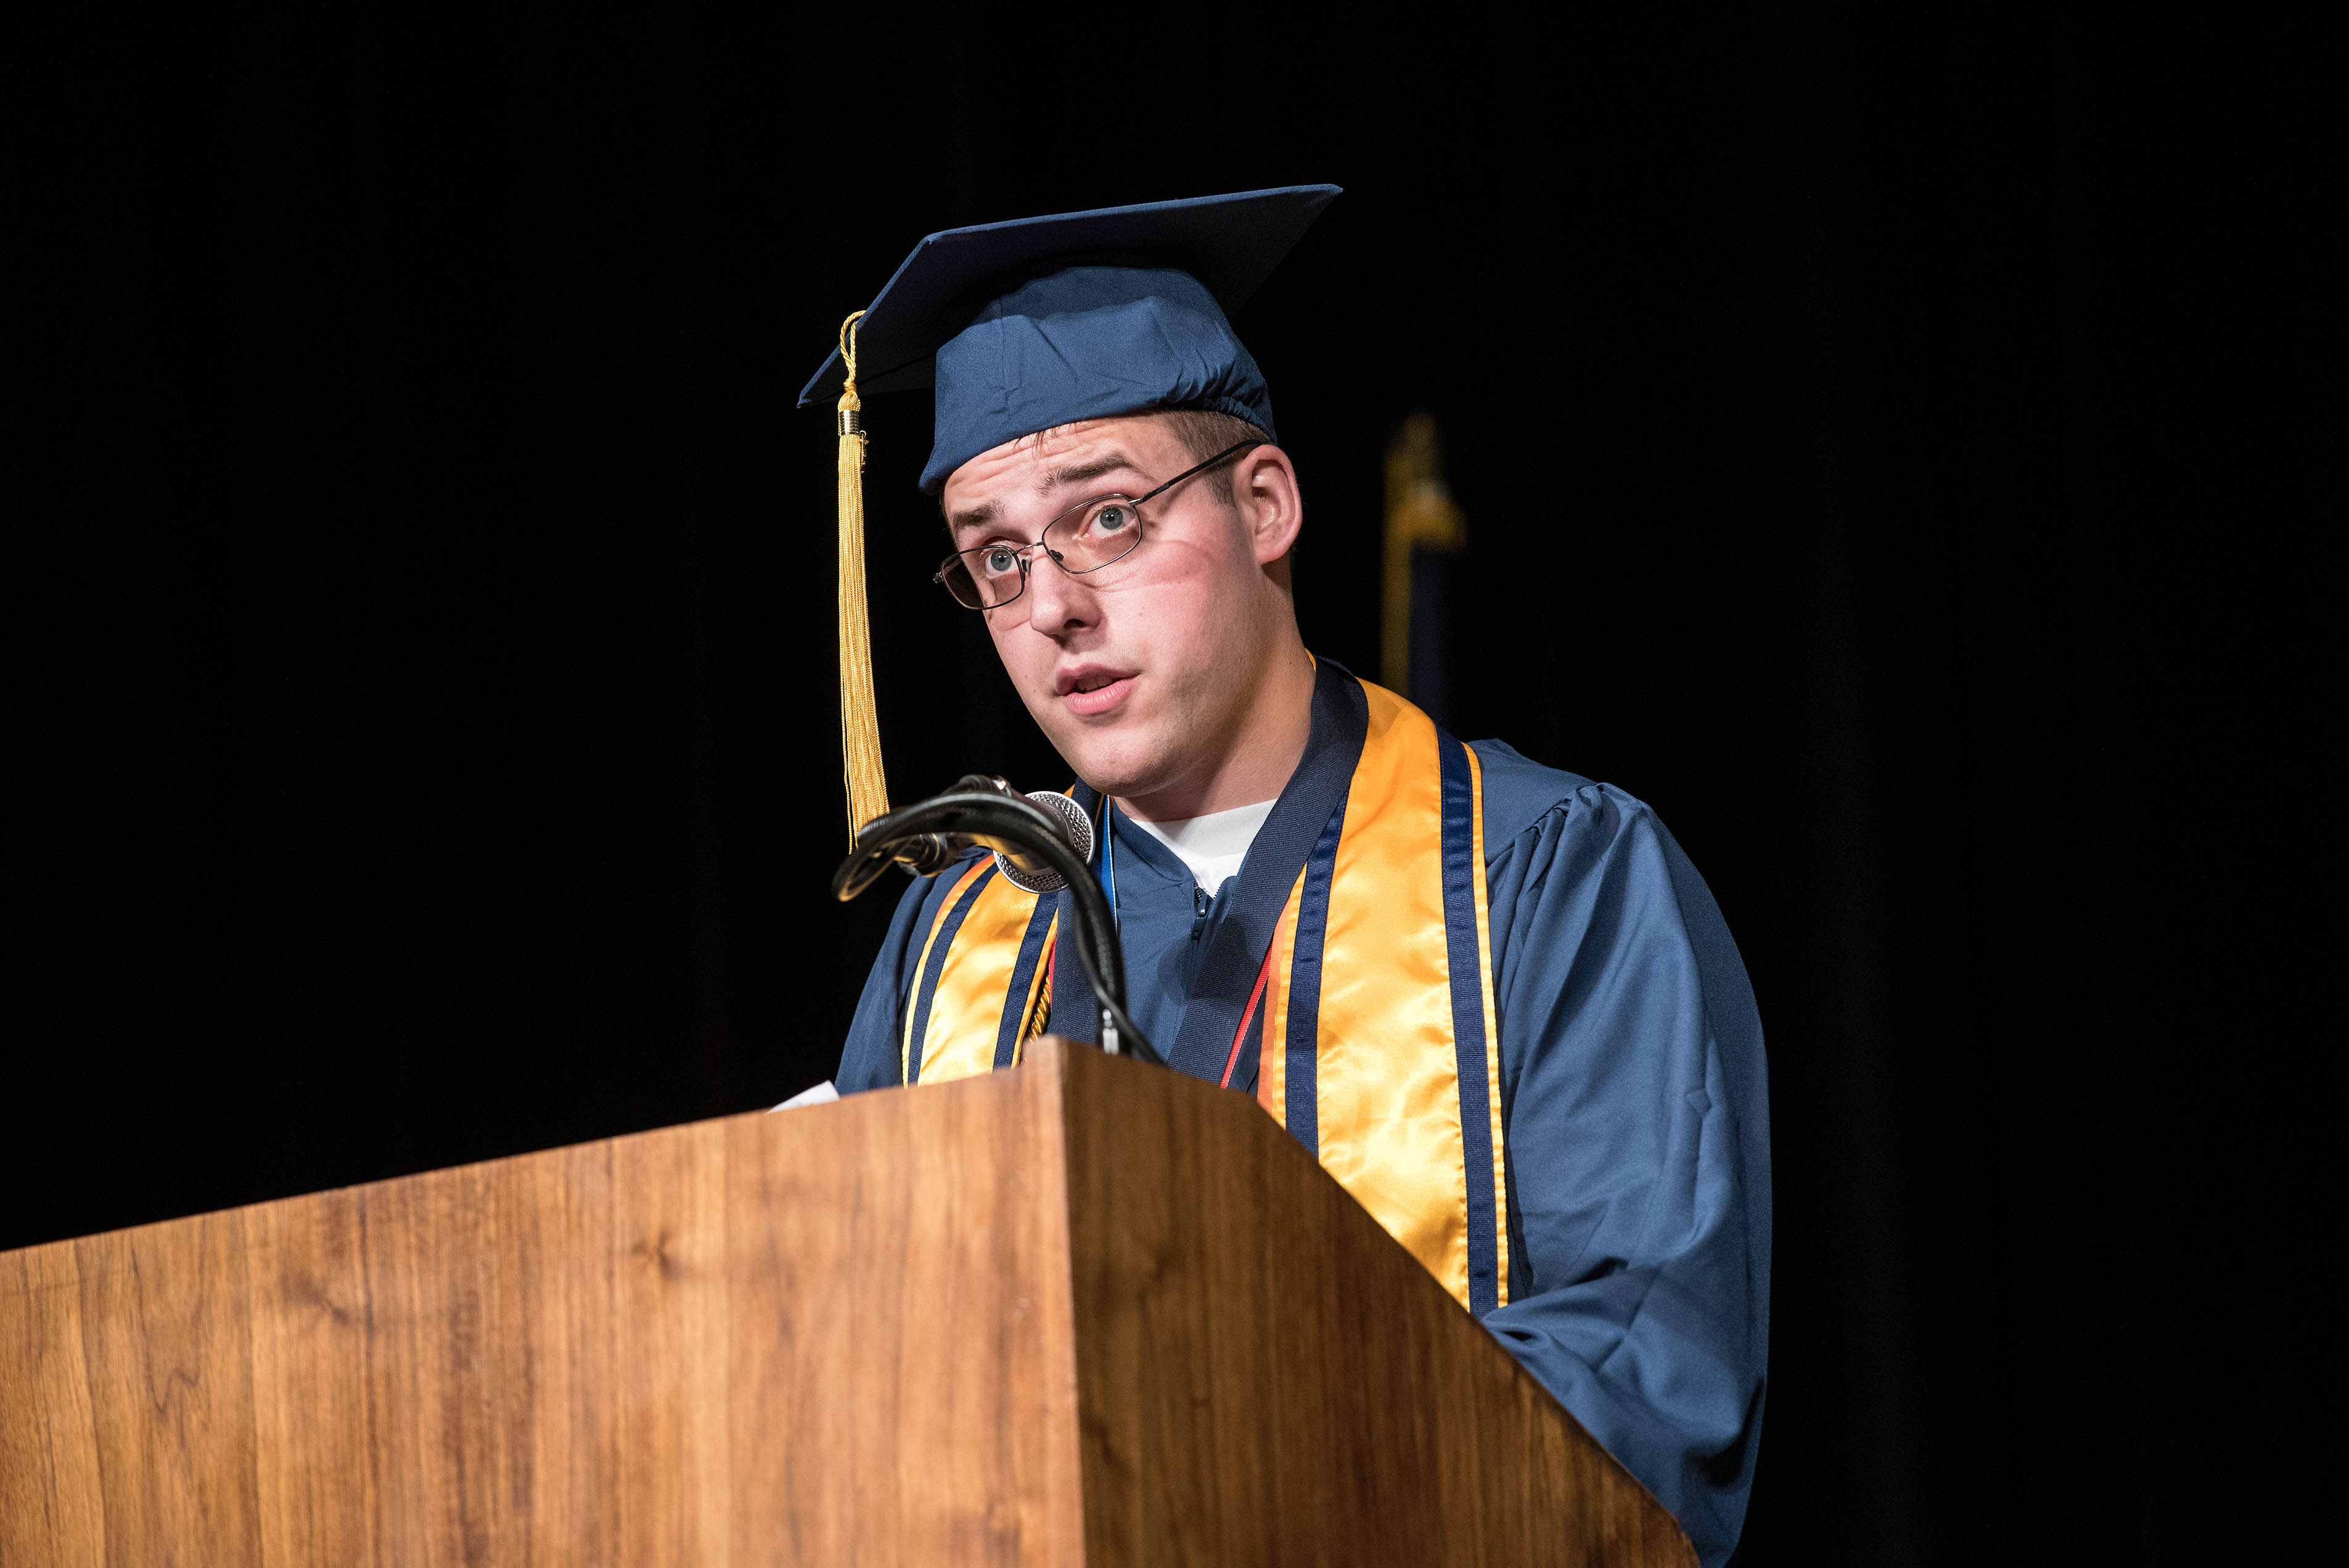 Jake Ledman delivers his commencement remarks to the Class of 2018